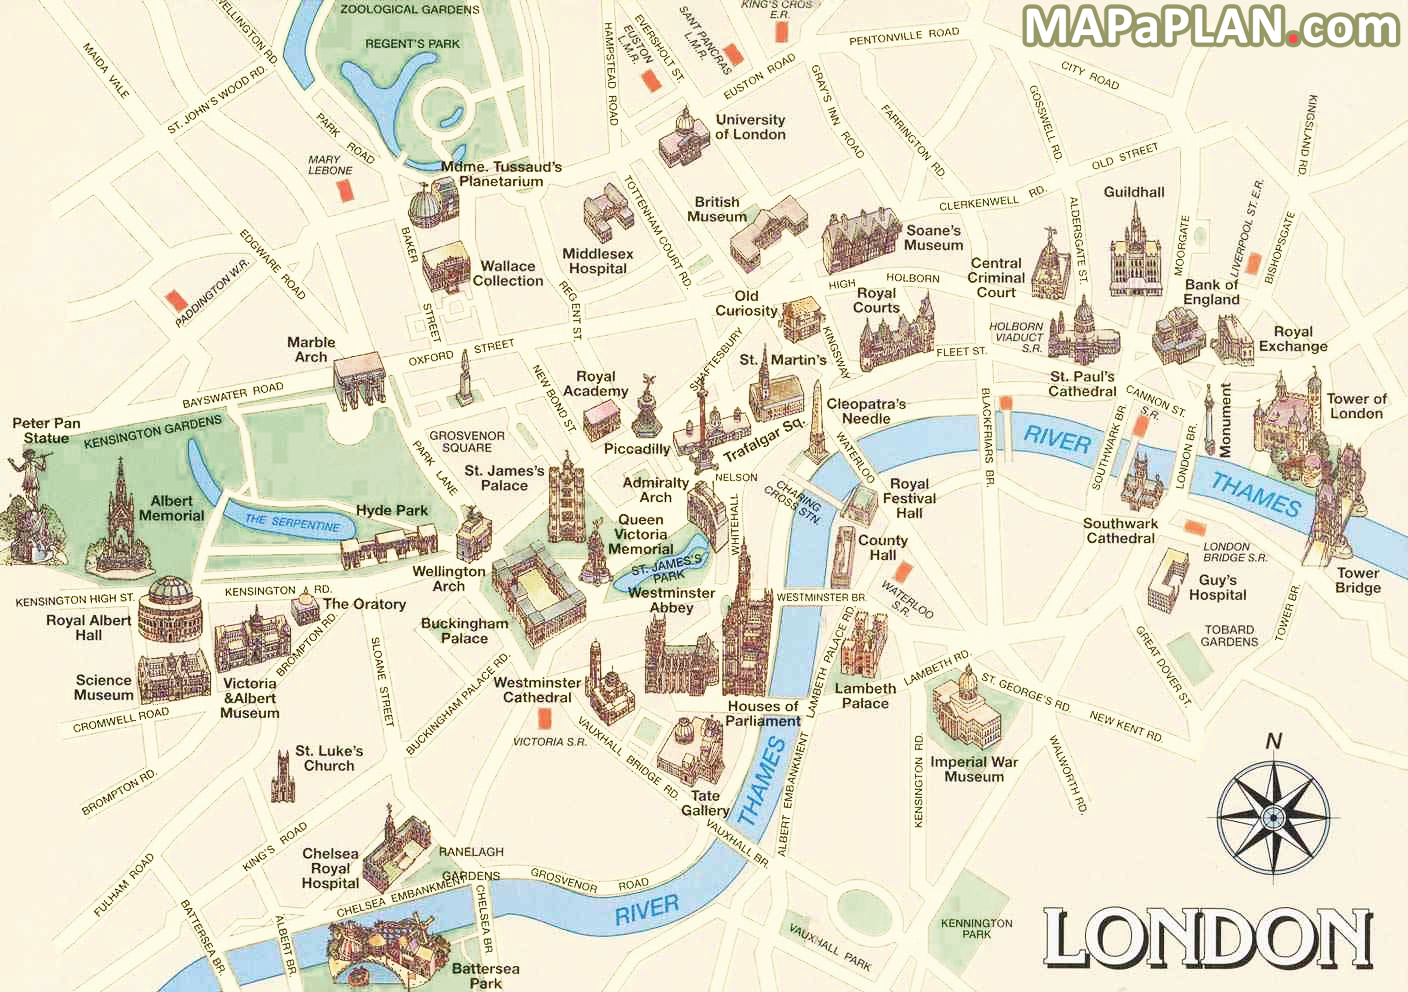 London Top Tourist Attractions Map Must See Historical Places | Maps - Printable Tourist Map Of London Attractions